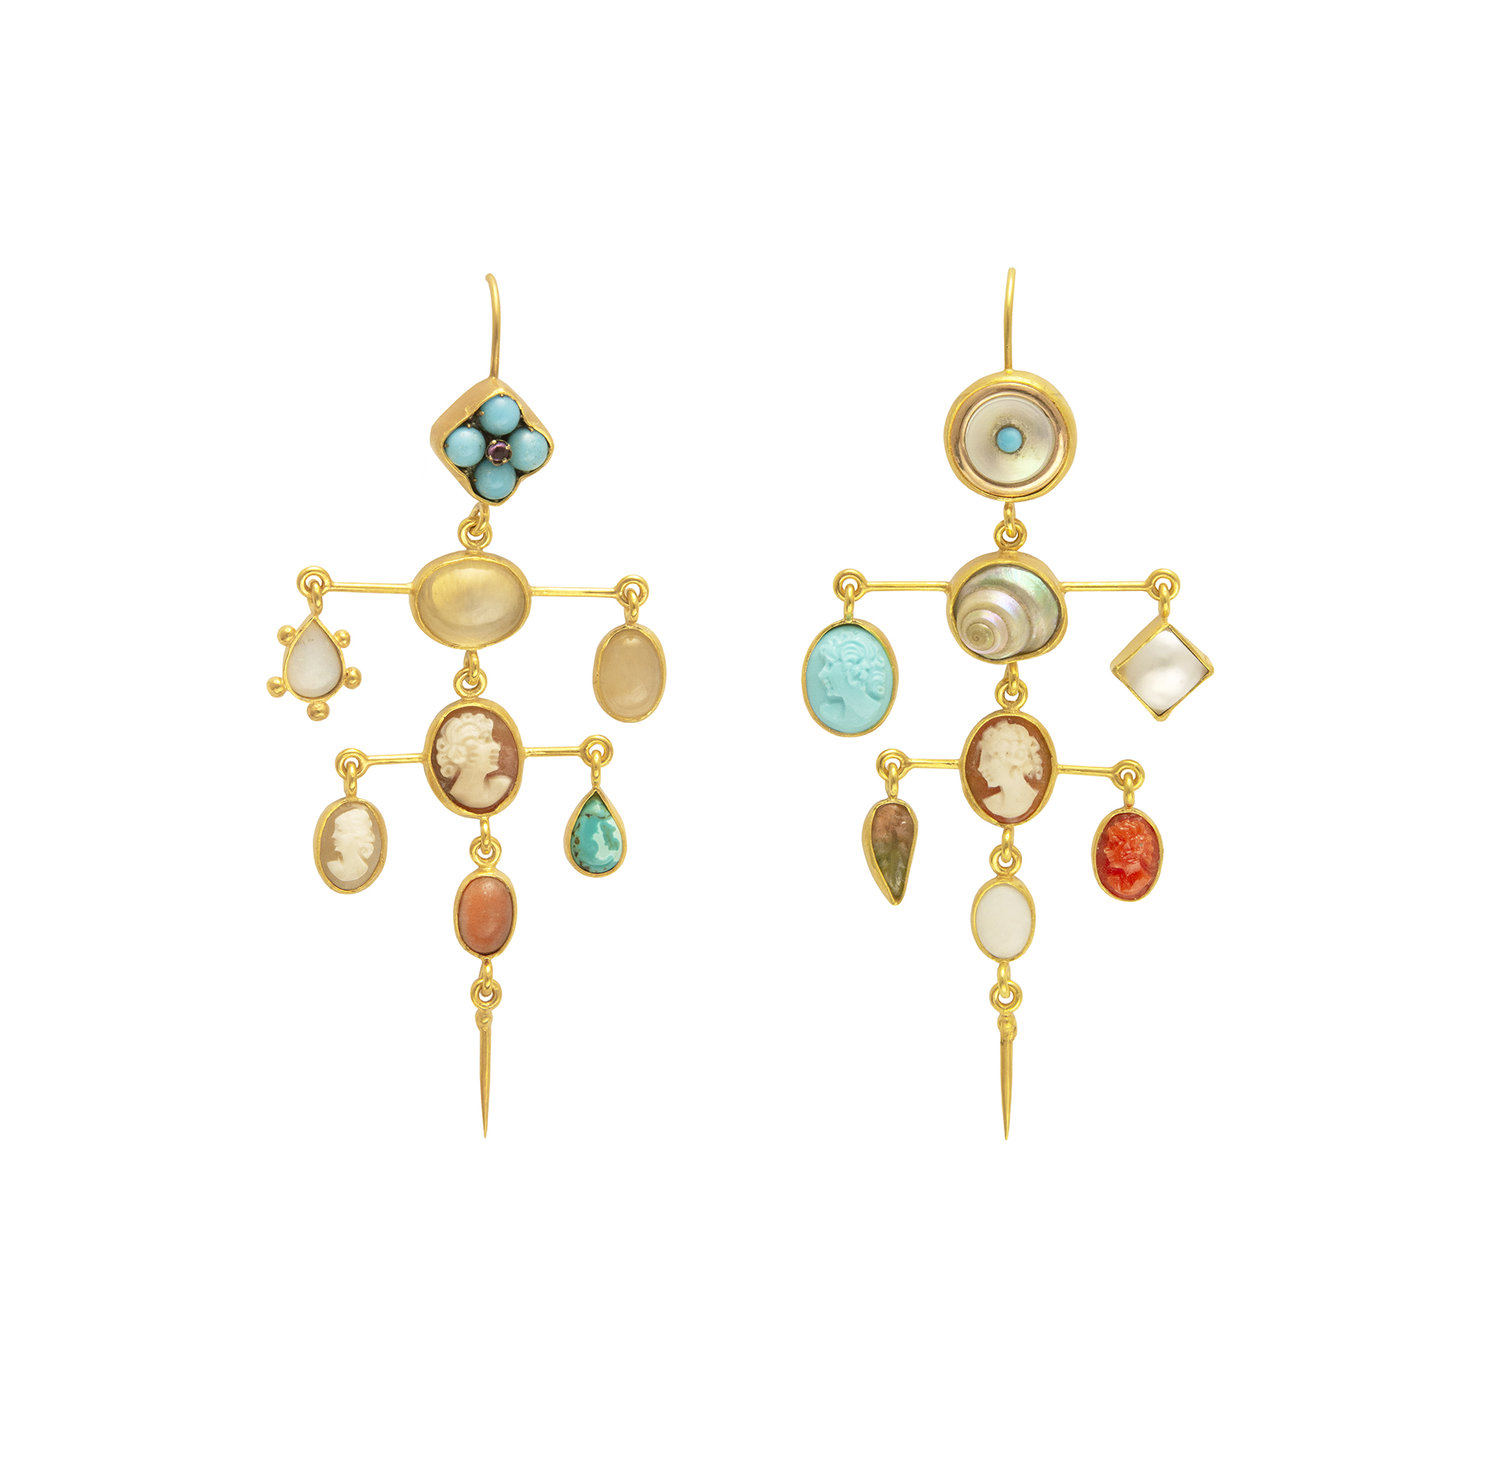 073269634 EARRINGS: LAYERED WITH VICTORIAN DROP